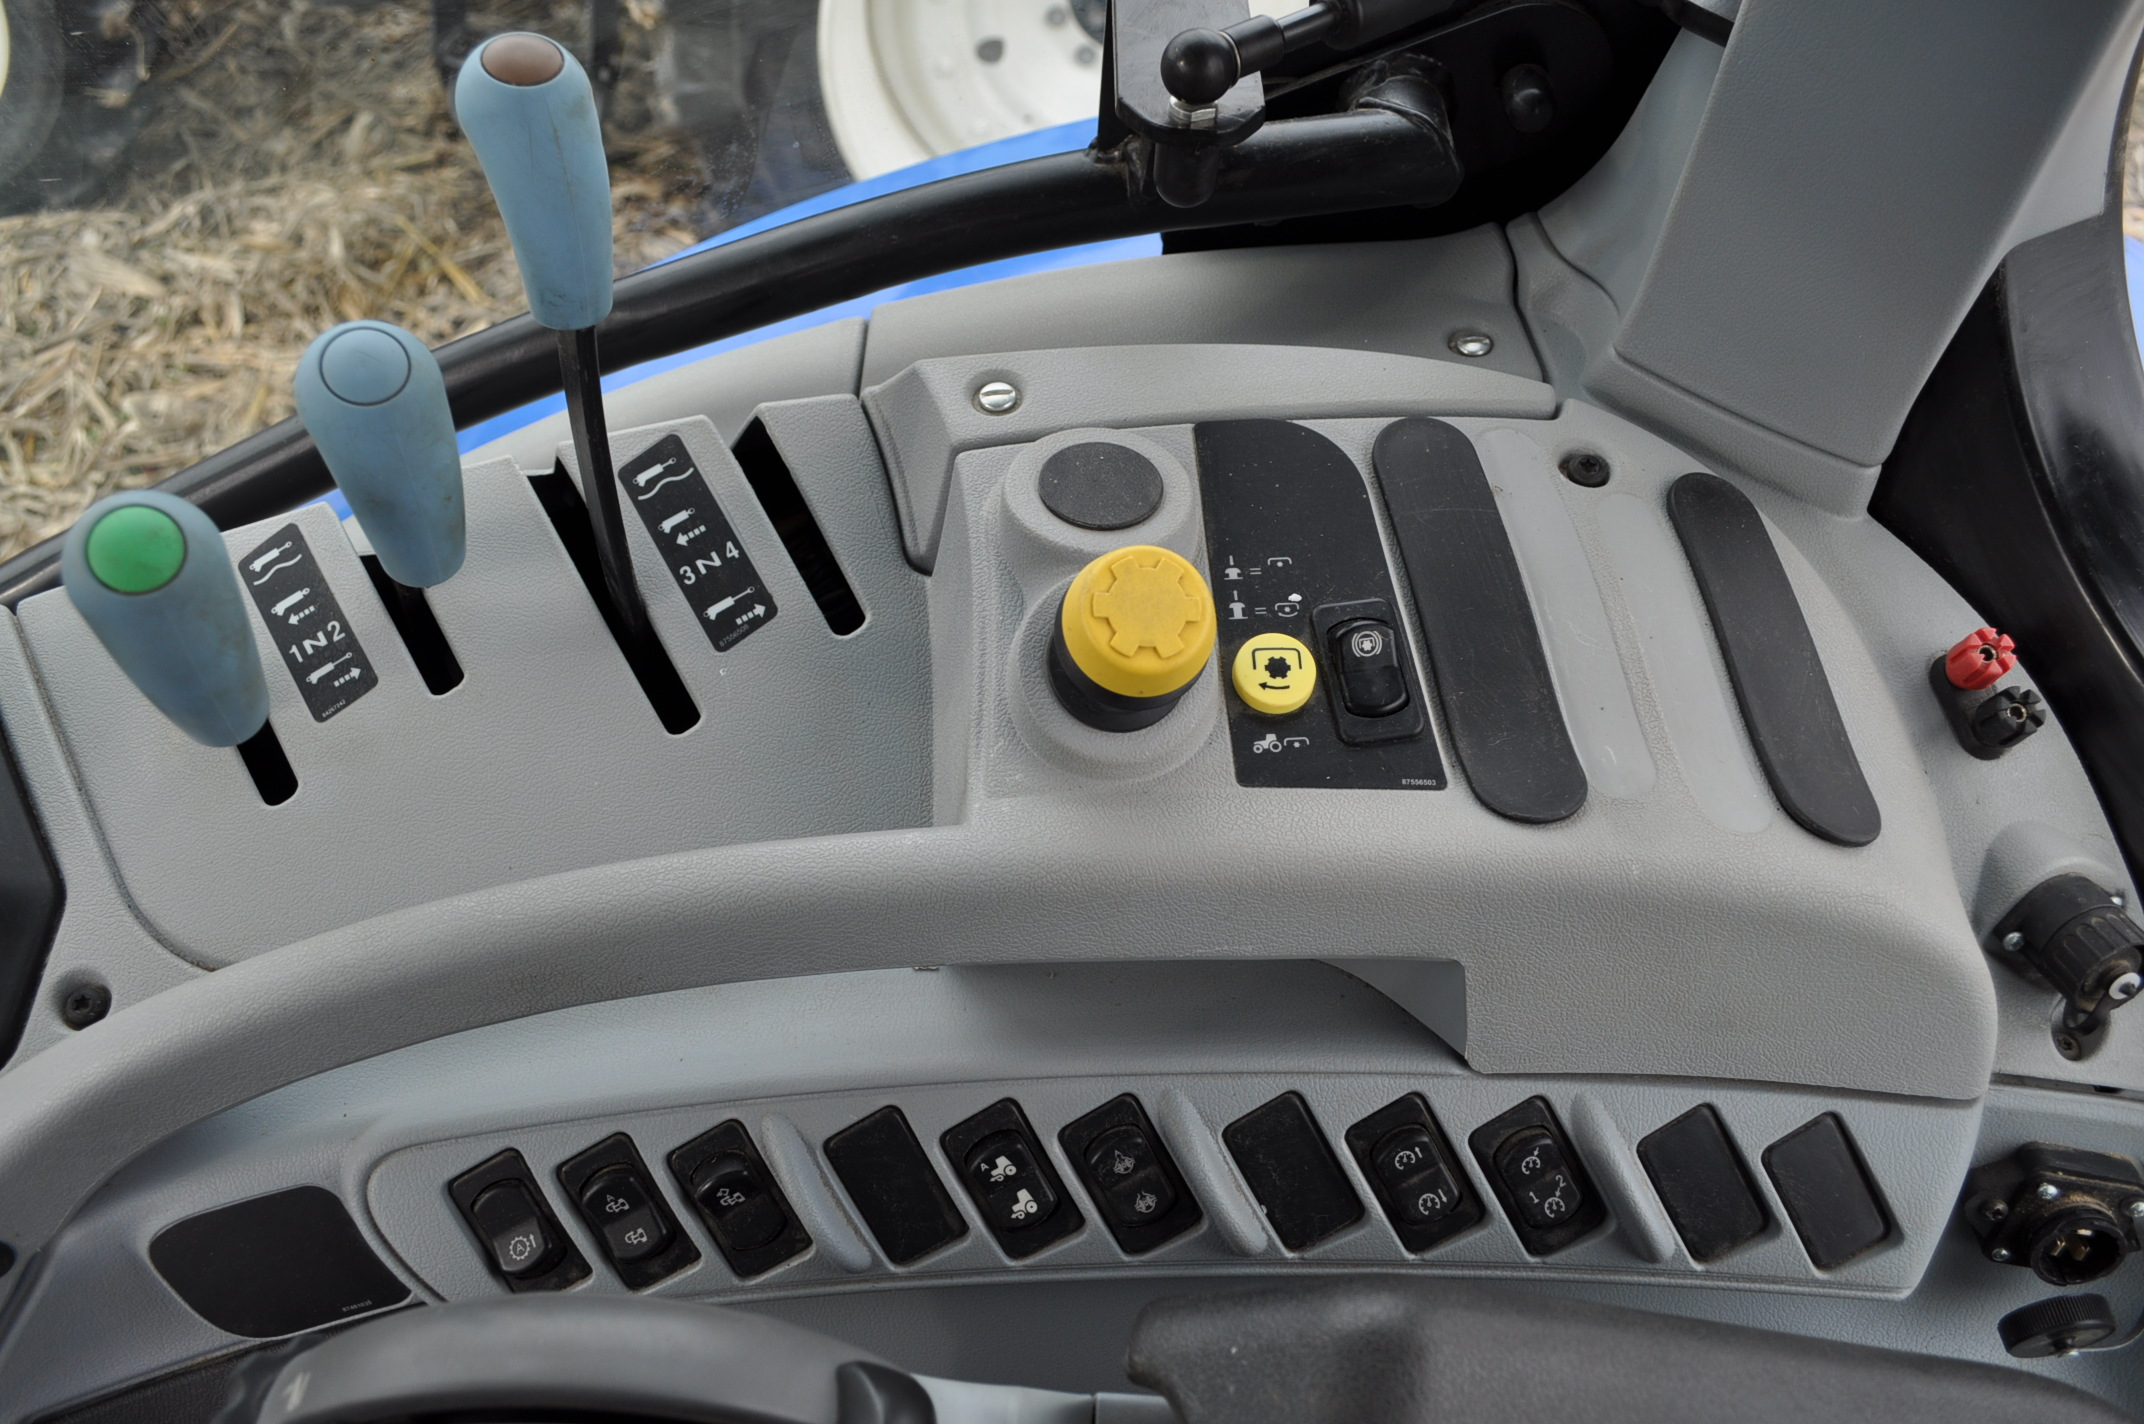 New Holland T7.210 MFWD tractor, 460/85 R 42 rear, 380/85 R 30 Firestone front, Super Steer - Image 17 of 24